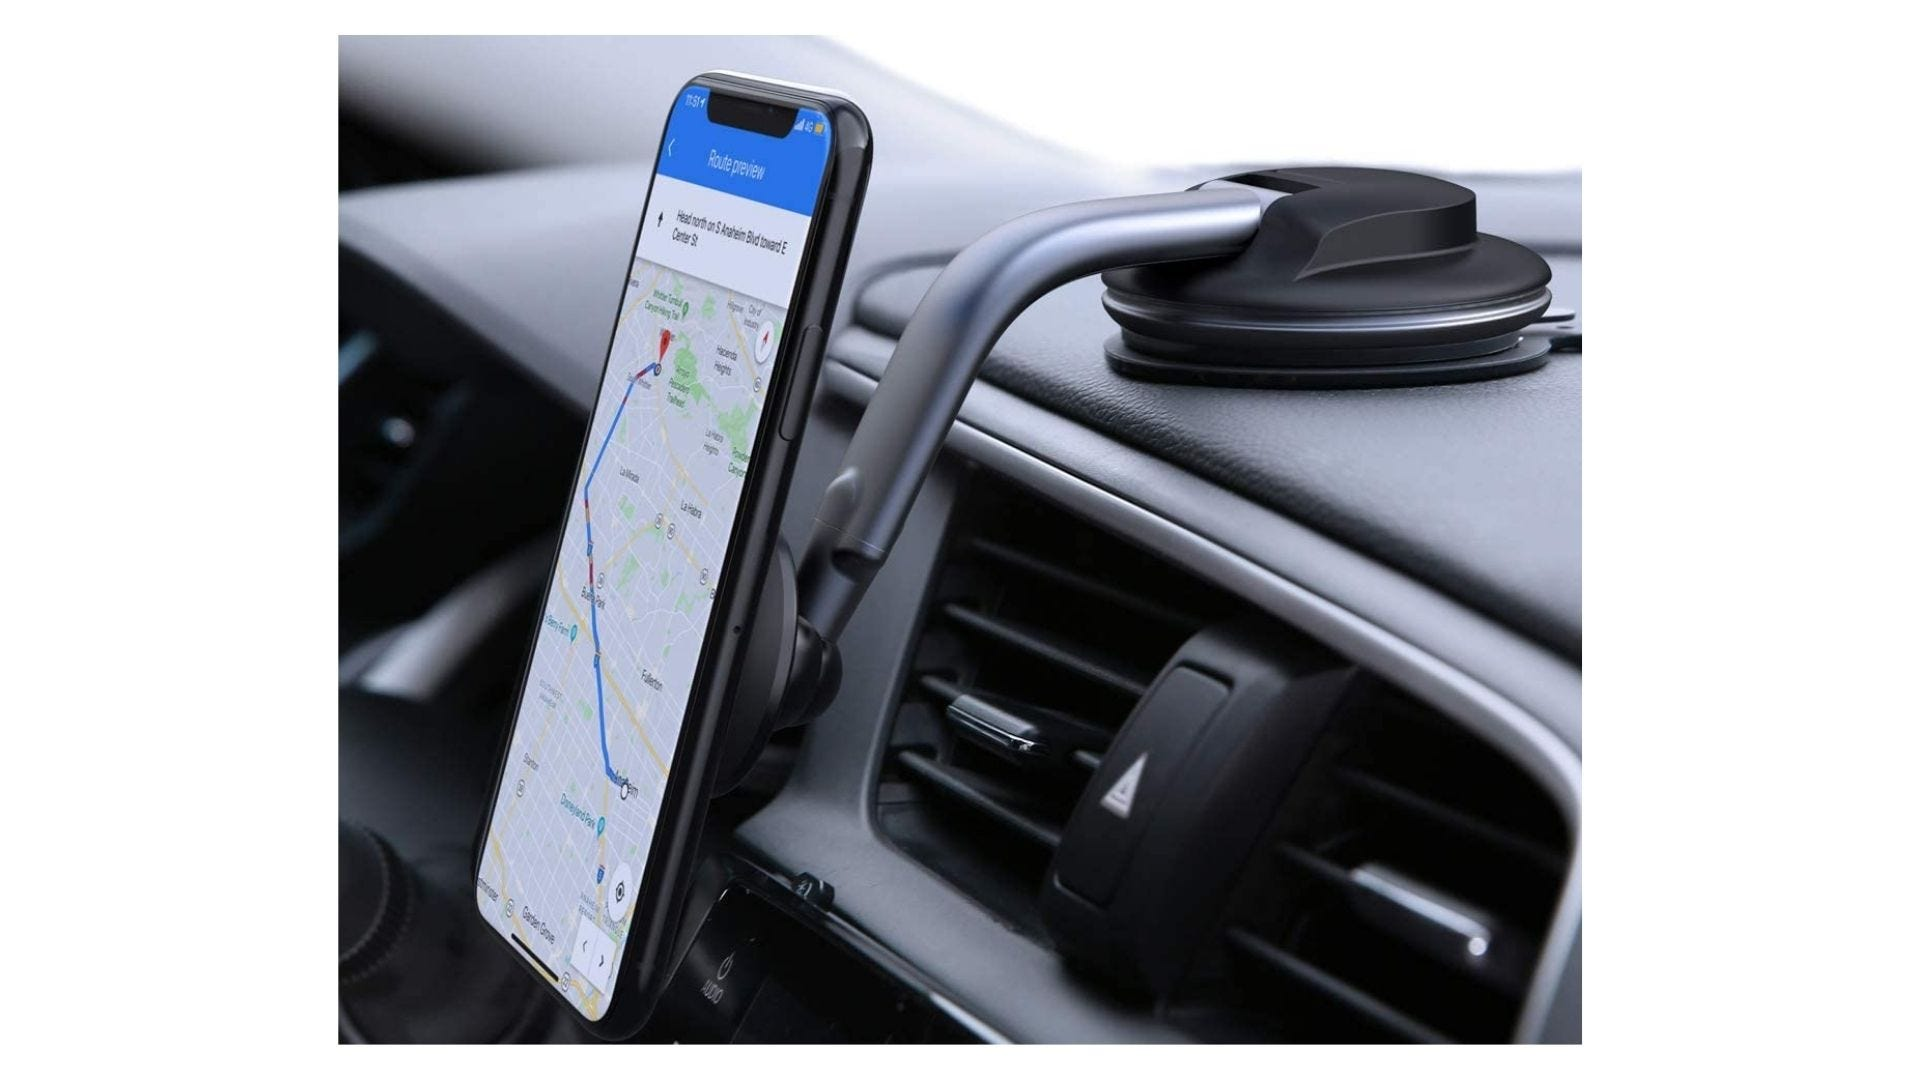 aukey magnetic phone dock for your car